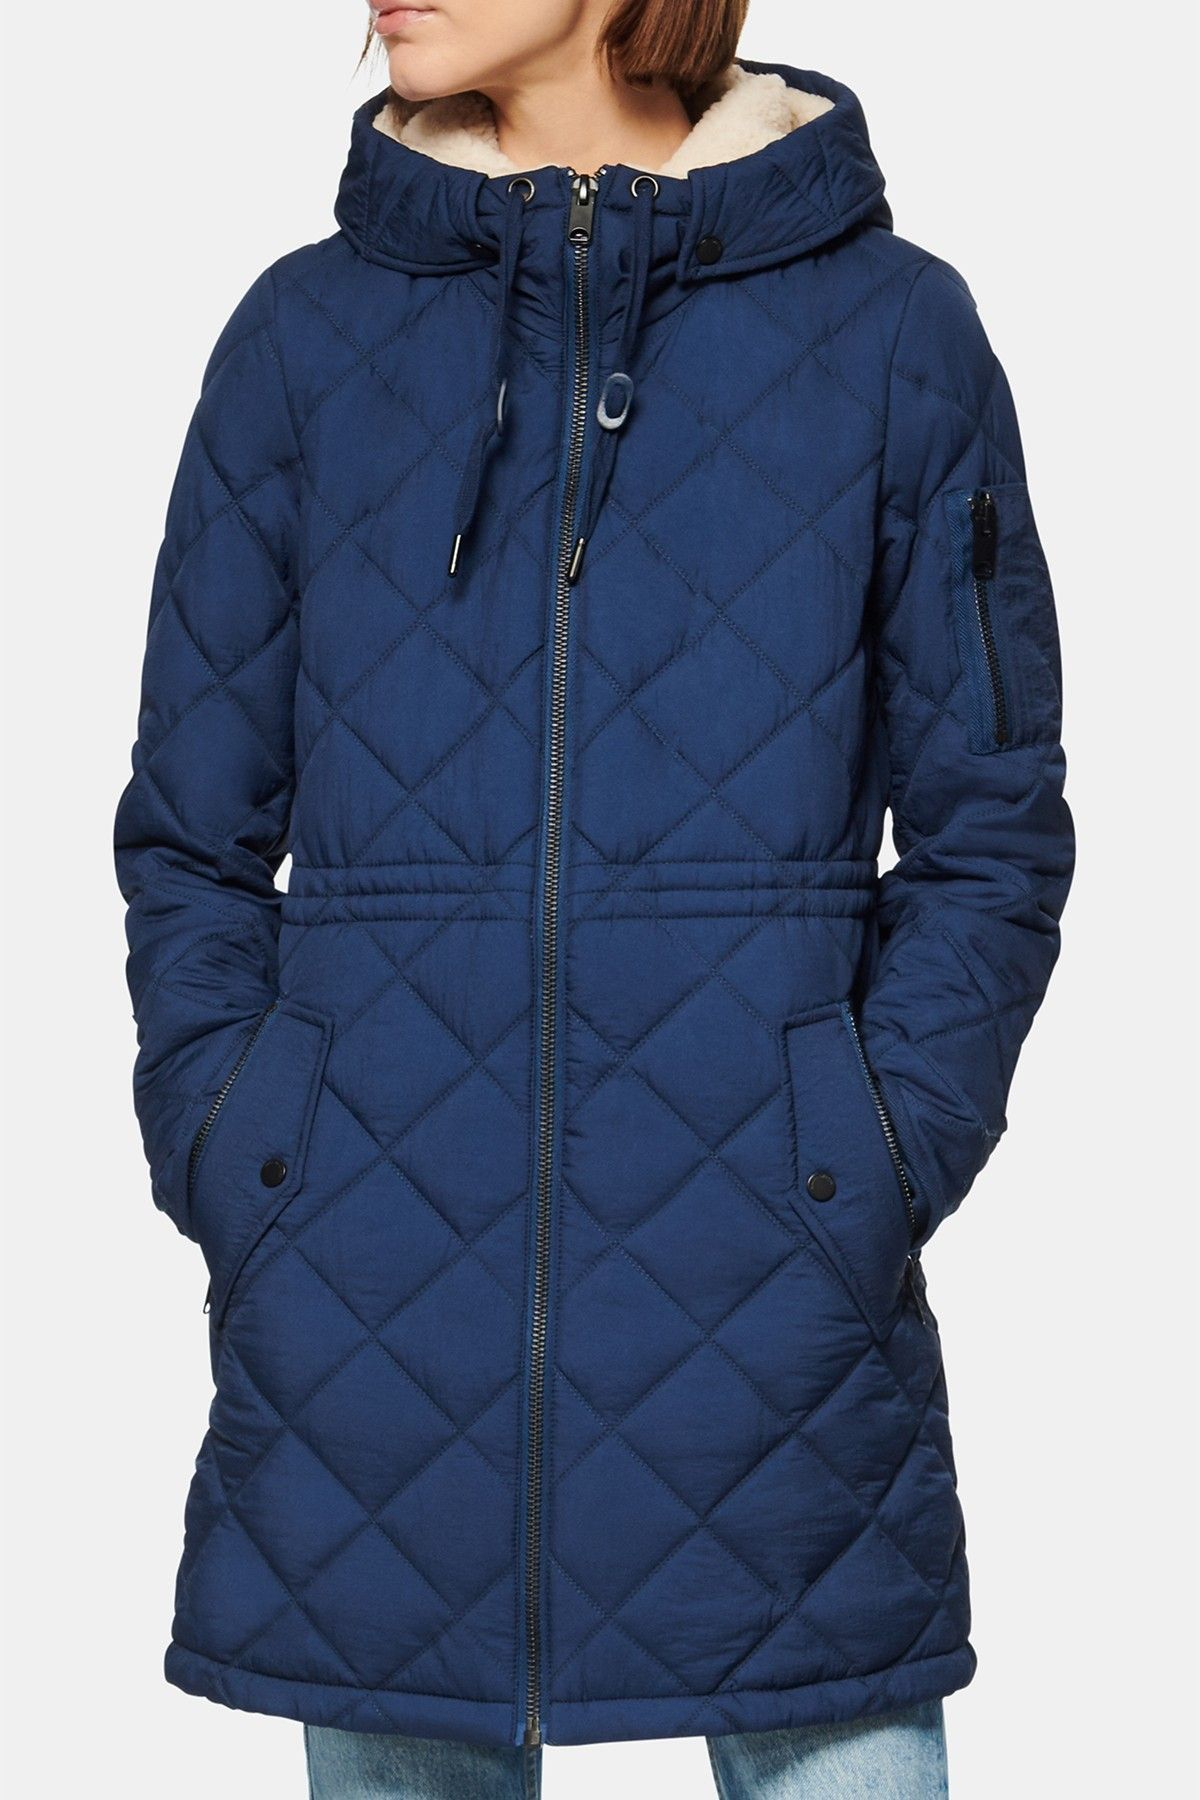 Marc New York Cascade Quilted Parka Nordstromrack Cascade Quilted Parka By Marc New York On Nordstrom Rack Quilted Parka Parka Marc New York